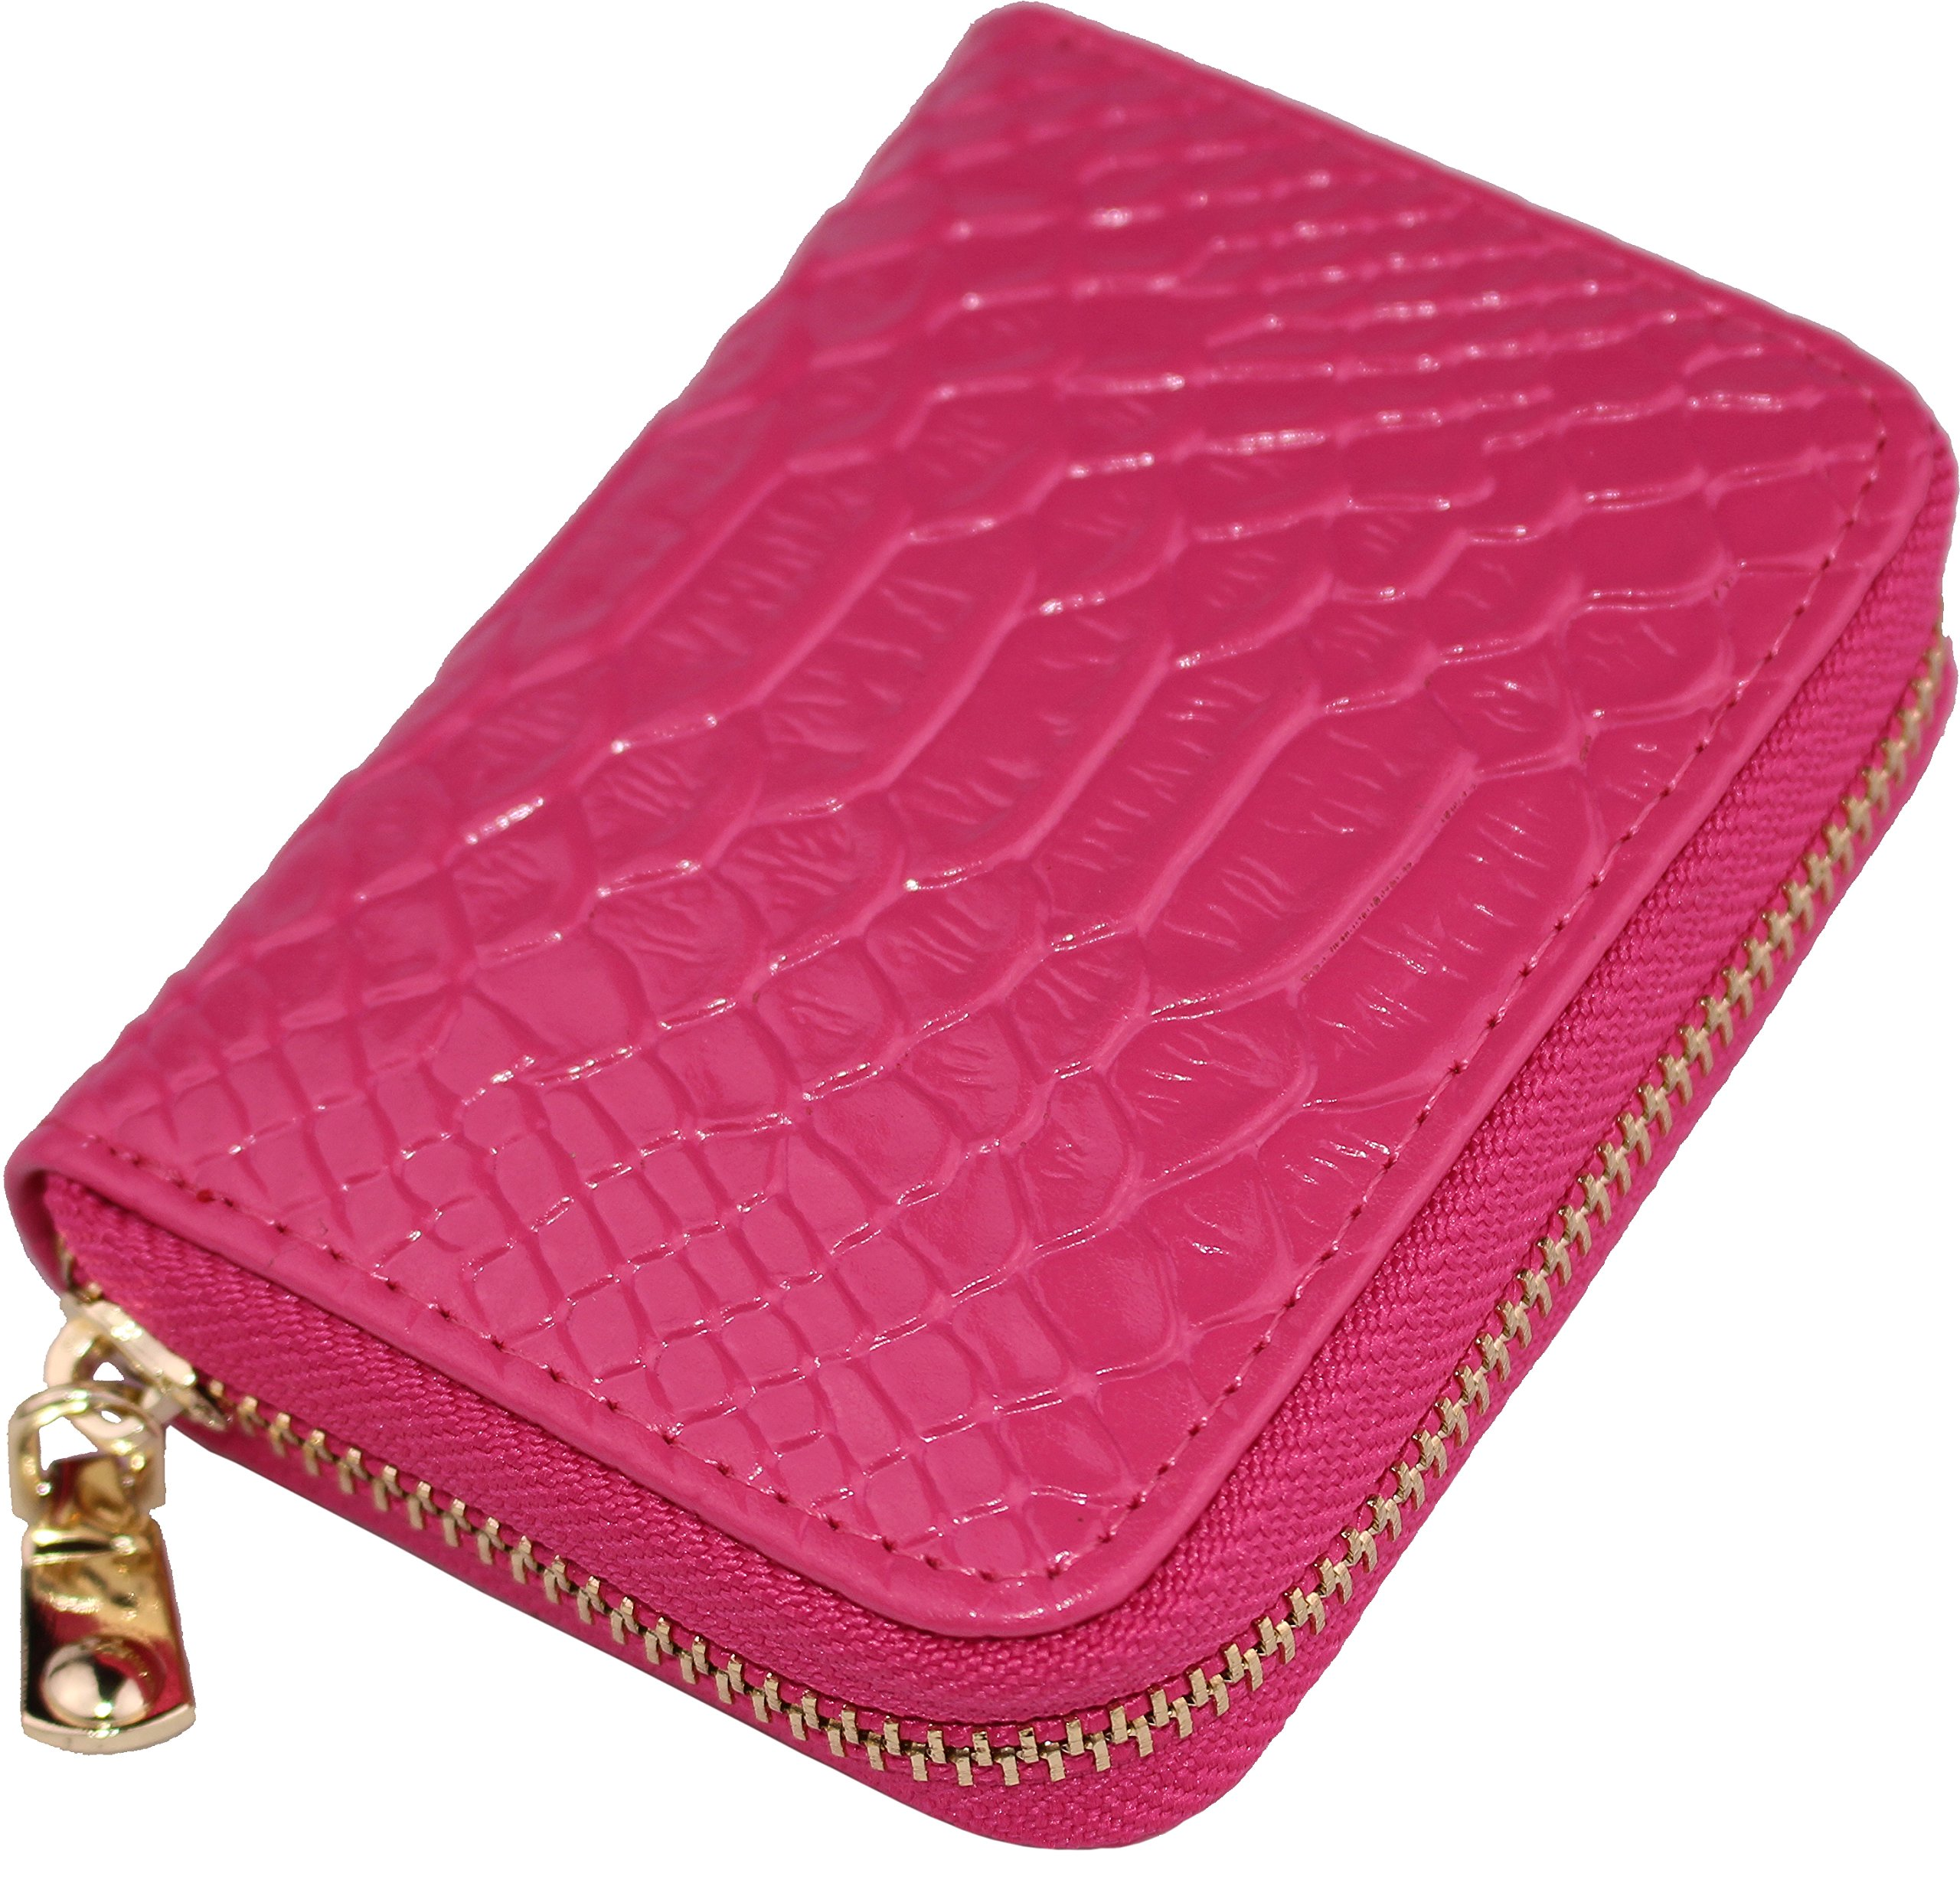 Cute Card Case Small Wallets For Women RFID Blocking Mini Ladies Coin Purse (Glossy-Rose Red)